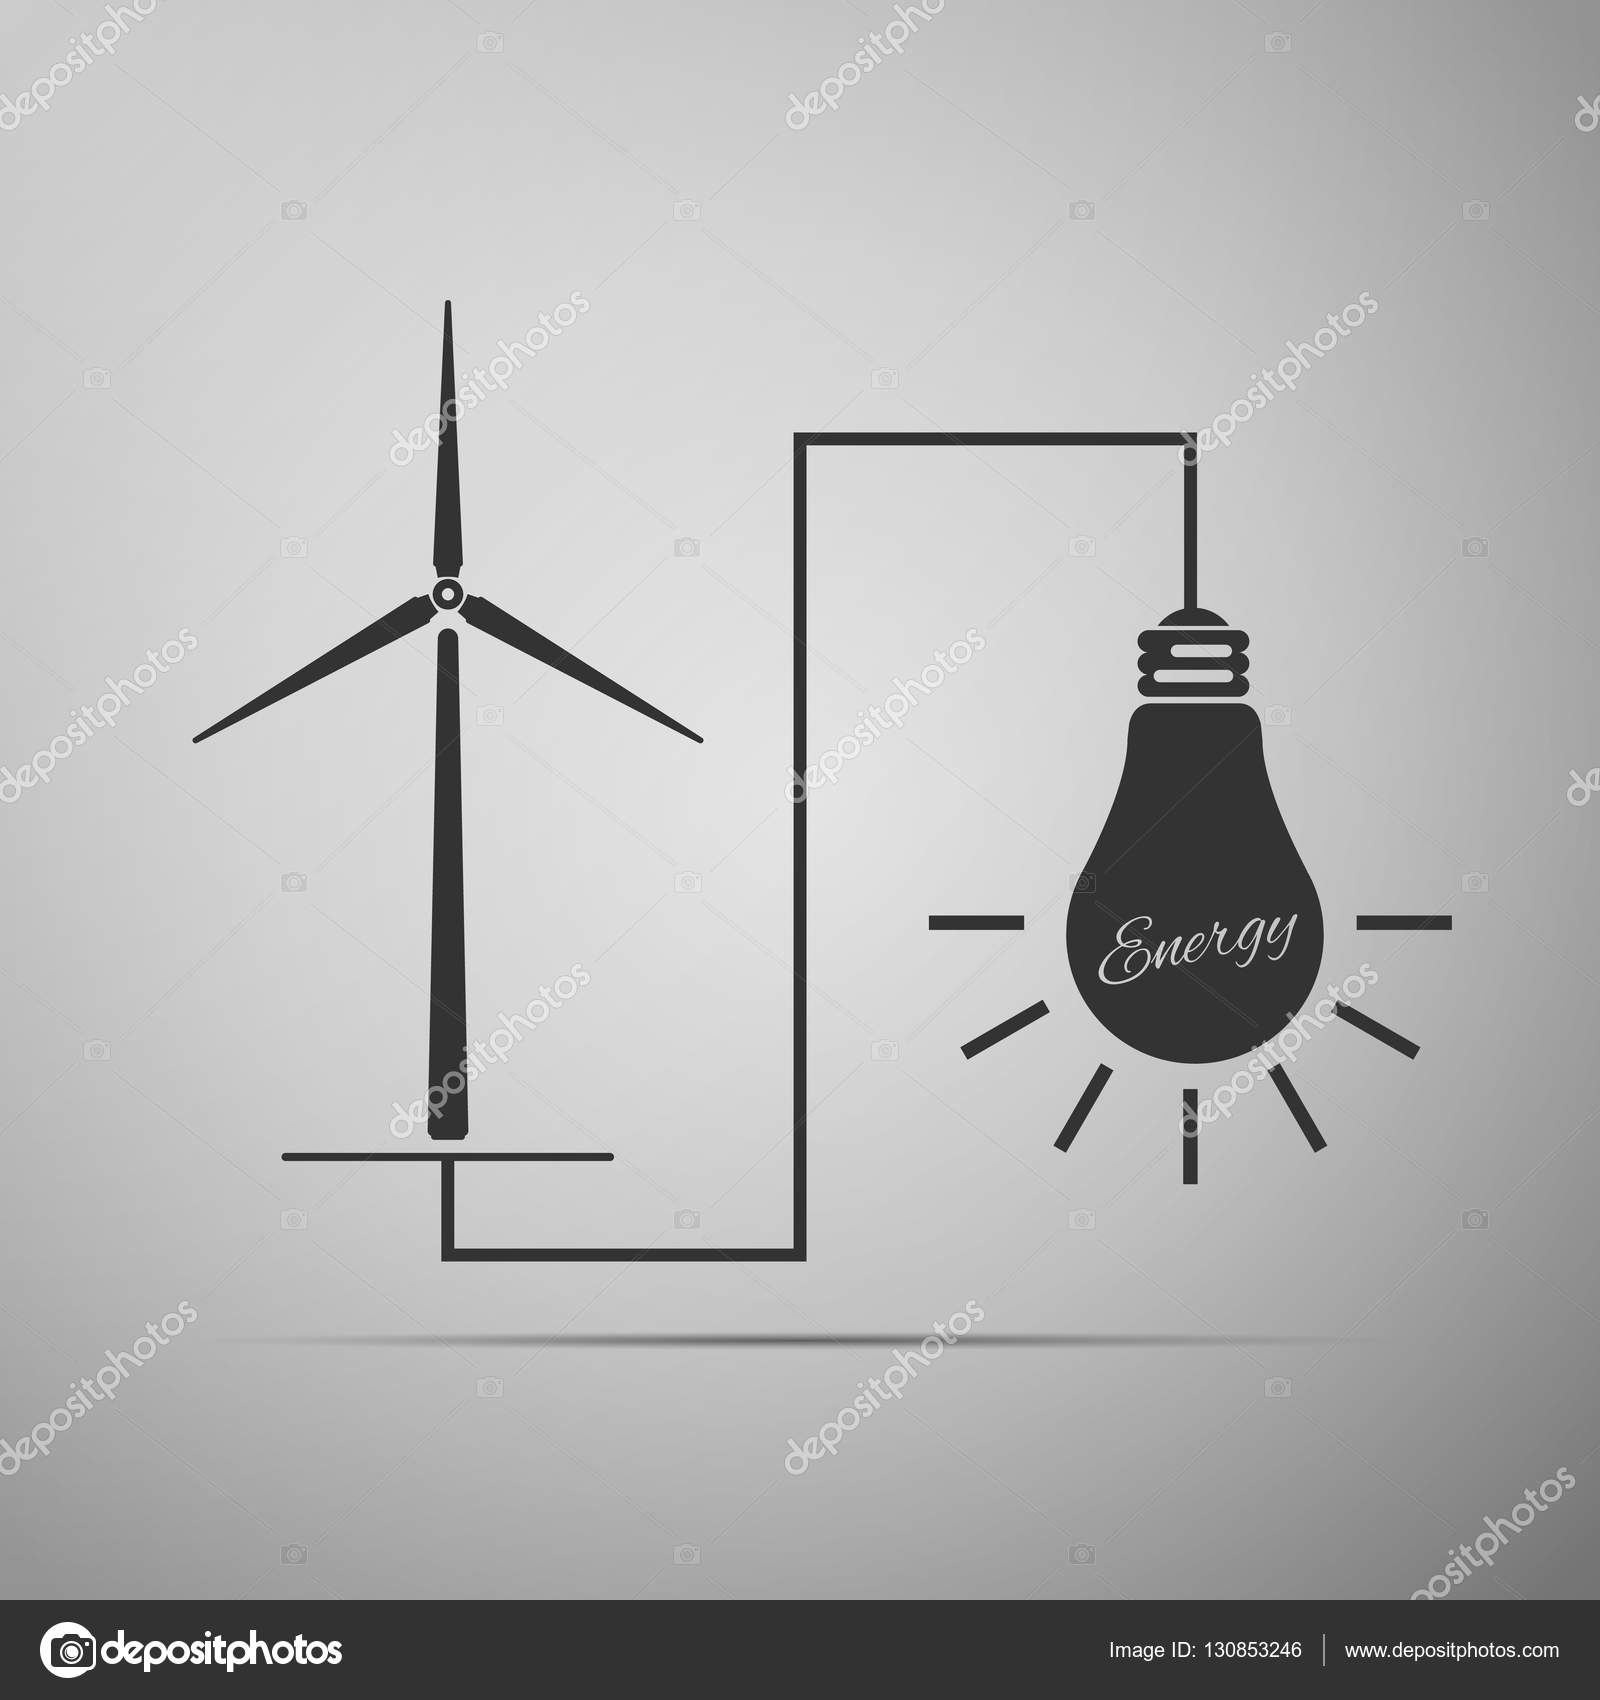 Wind mill turbine generating power energy and glowing light bulb ...